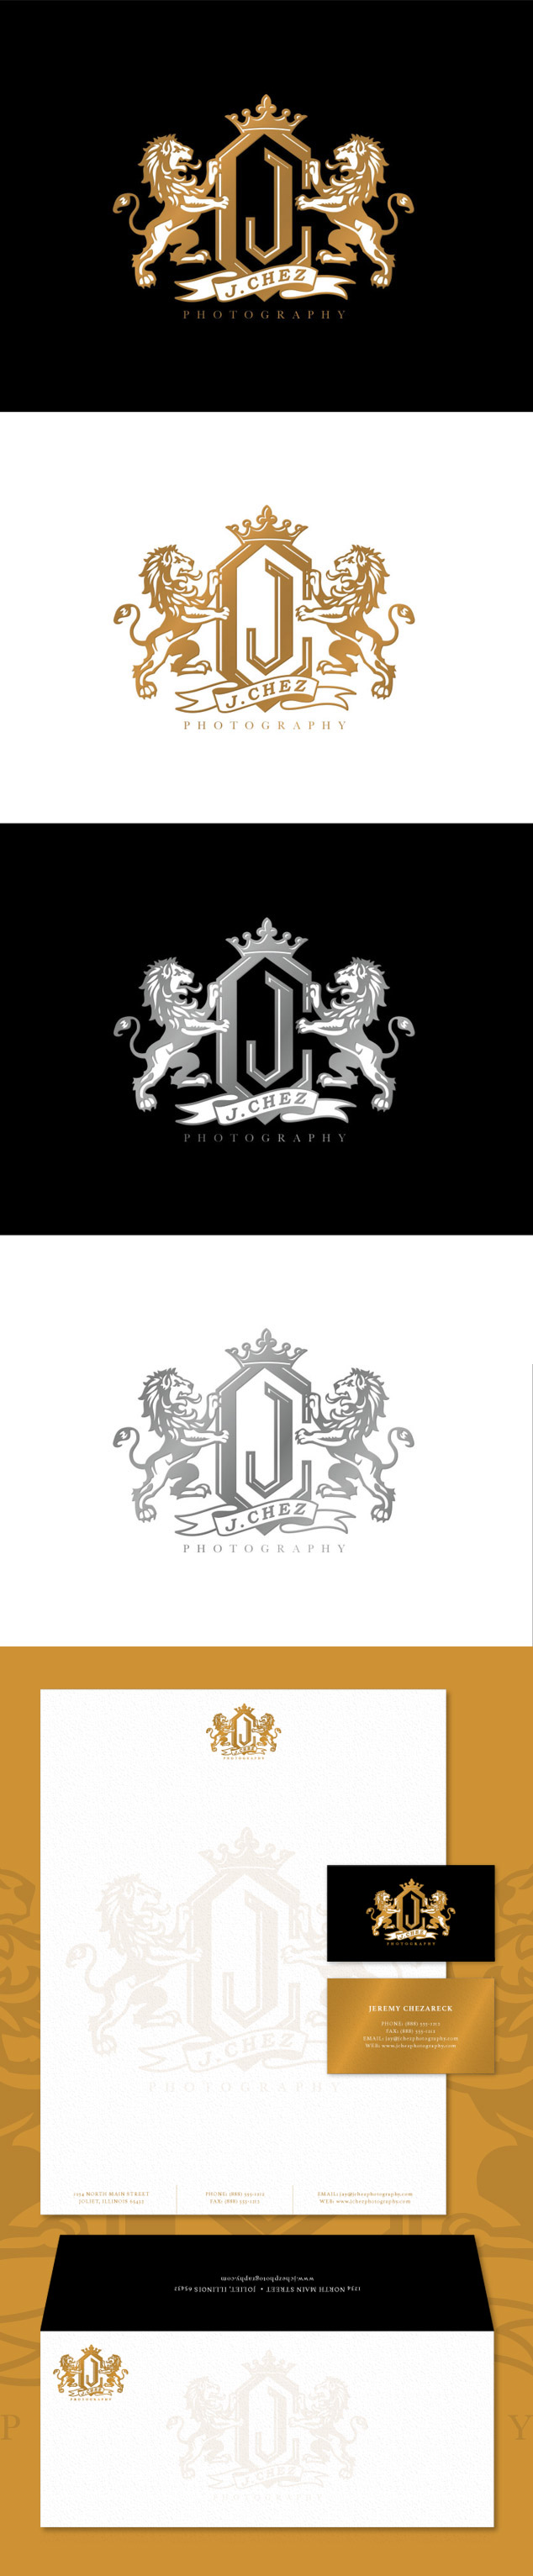 J. Chez Photography branding/logo design